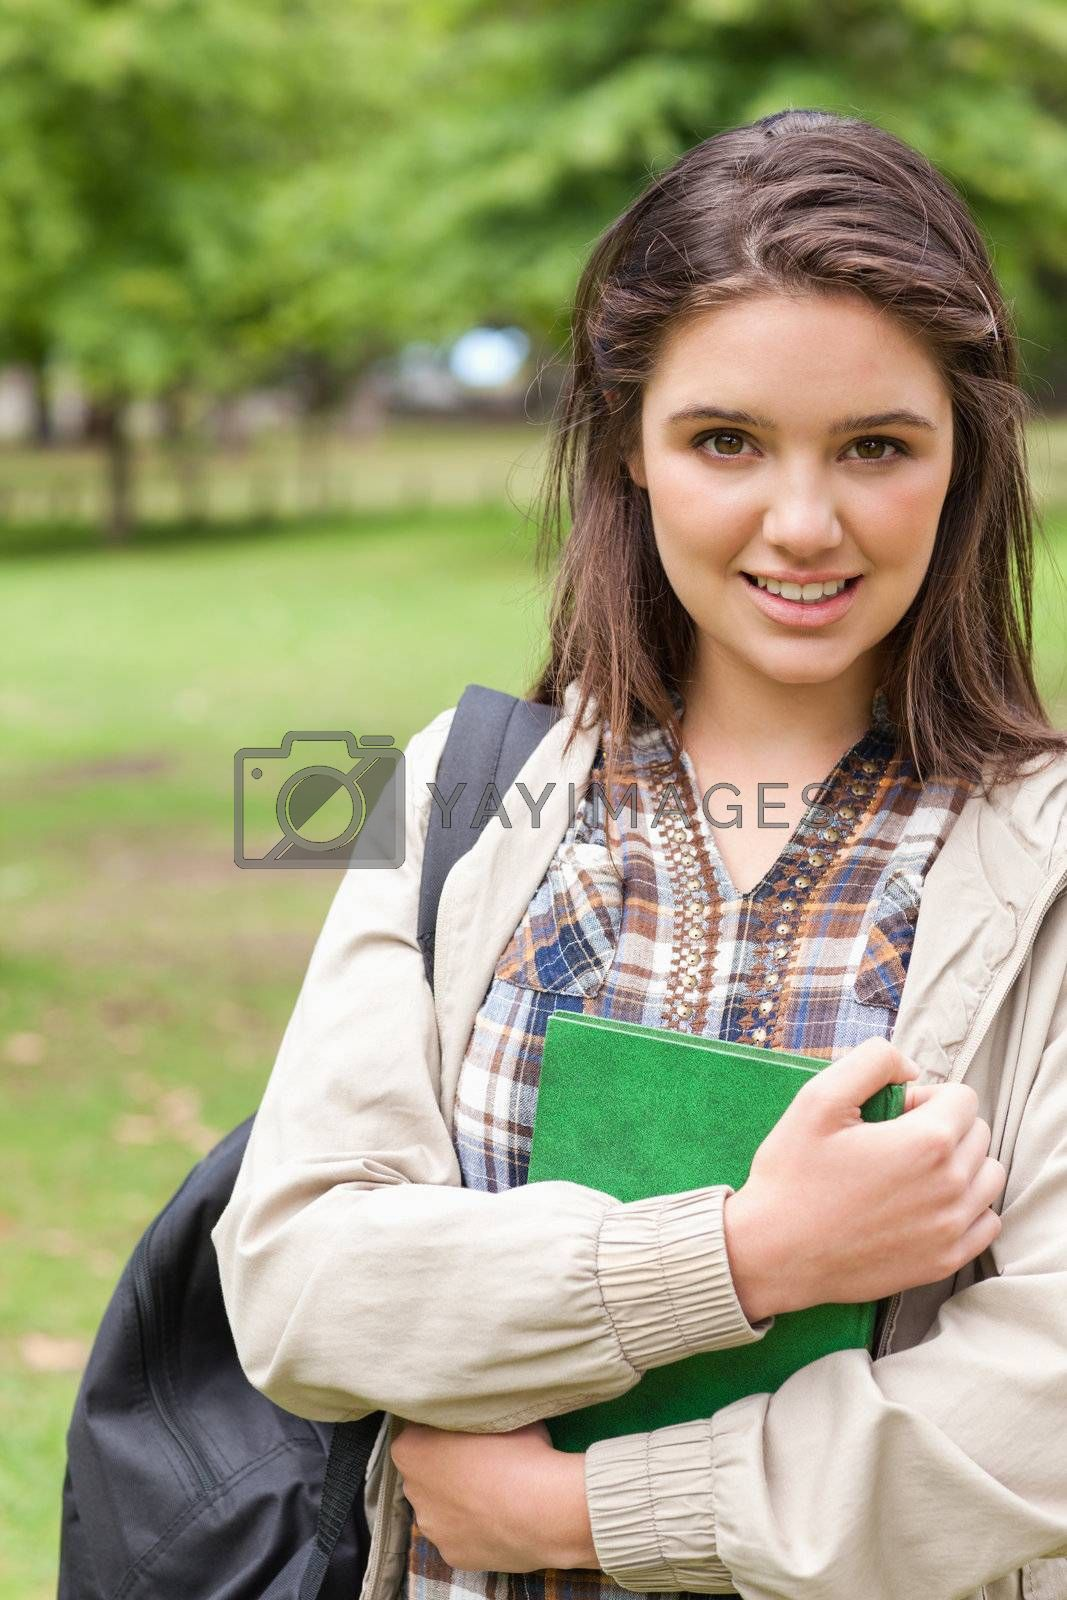 Portrait of a cute first-year student holding a textbook while posing in a park